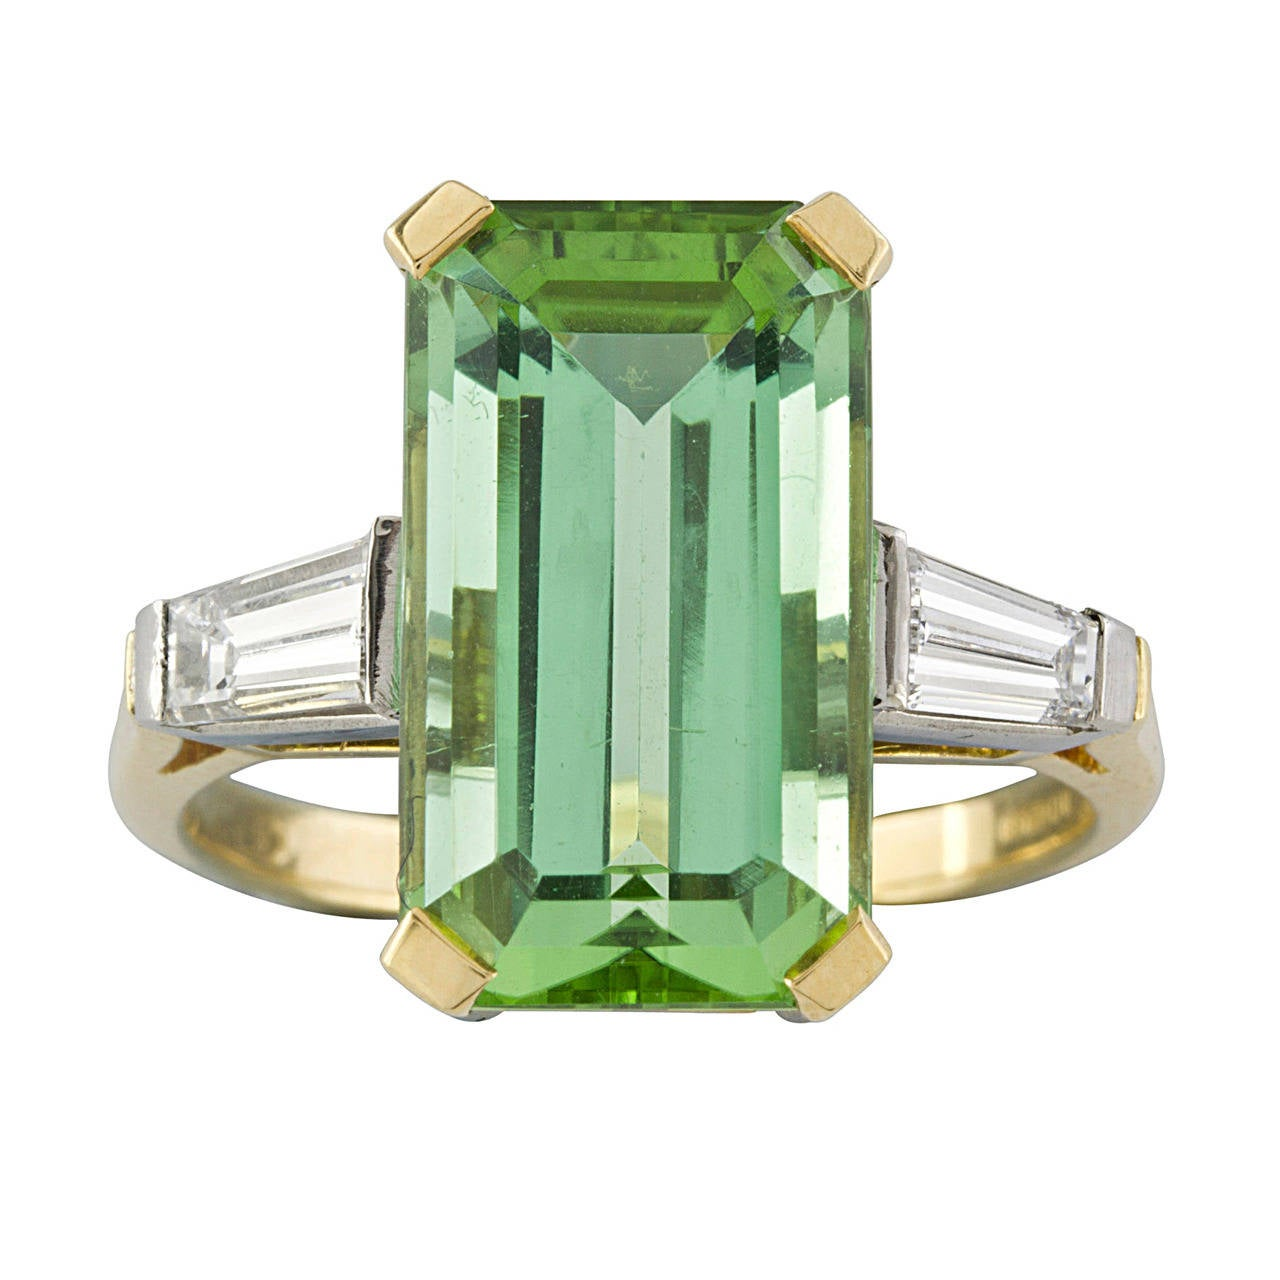 rings engagement portfolio chapelle continental ring description saint jewelers green project tourmaline items